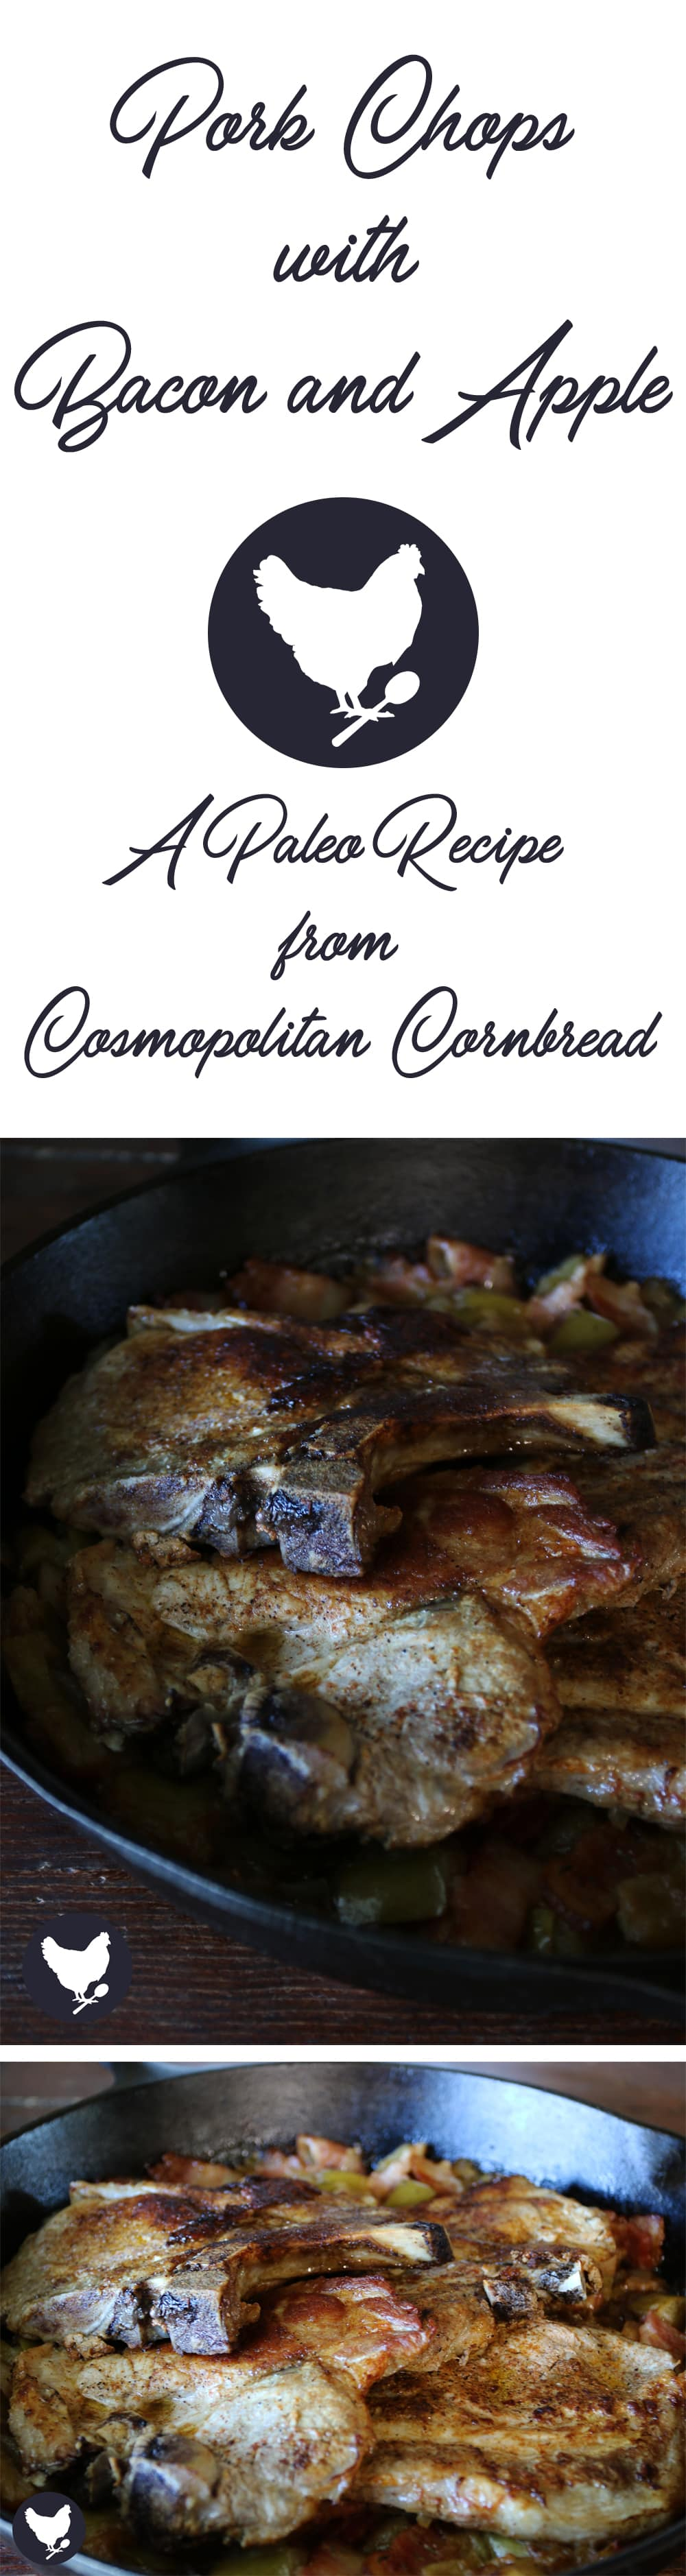 Paleo-friendly Pork Chops with Bacon and Apple make for a very flavorful and scrumptious one-pan supper.